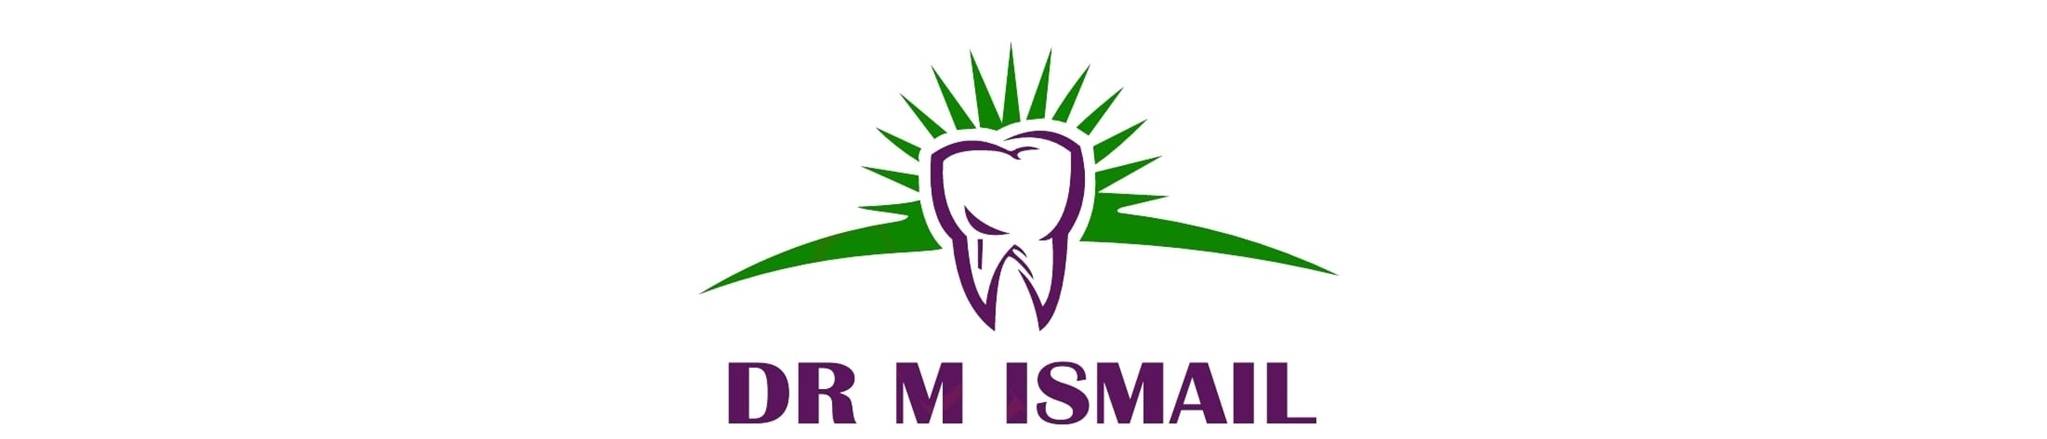 DR ISMAIL